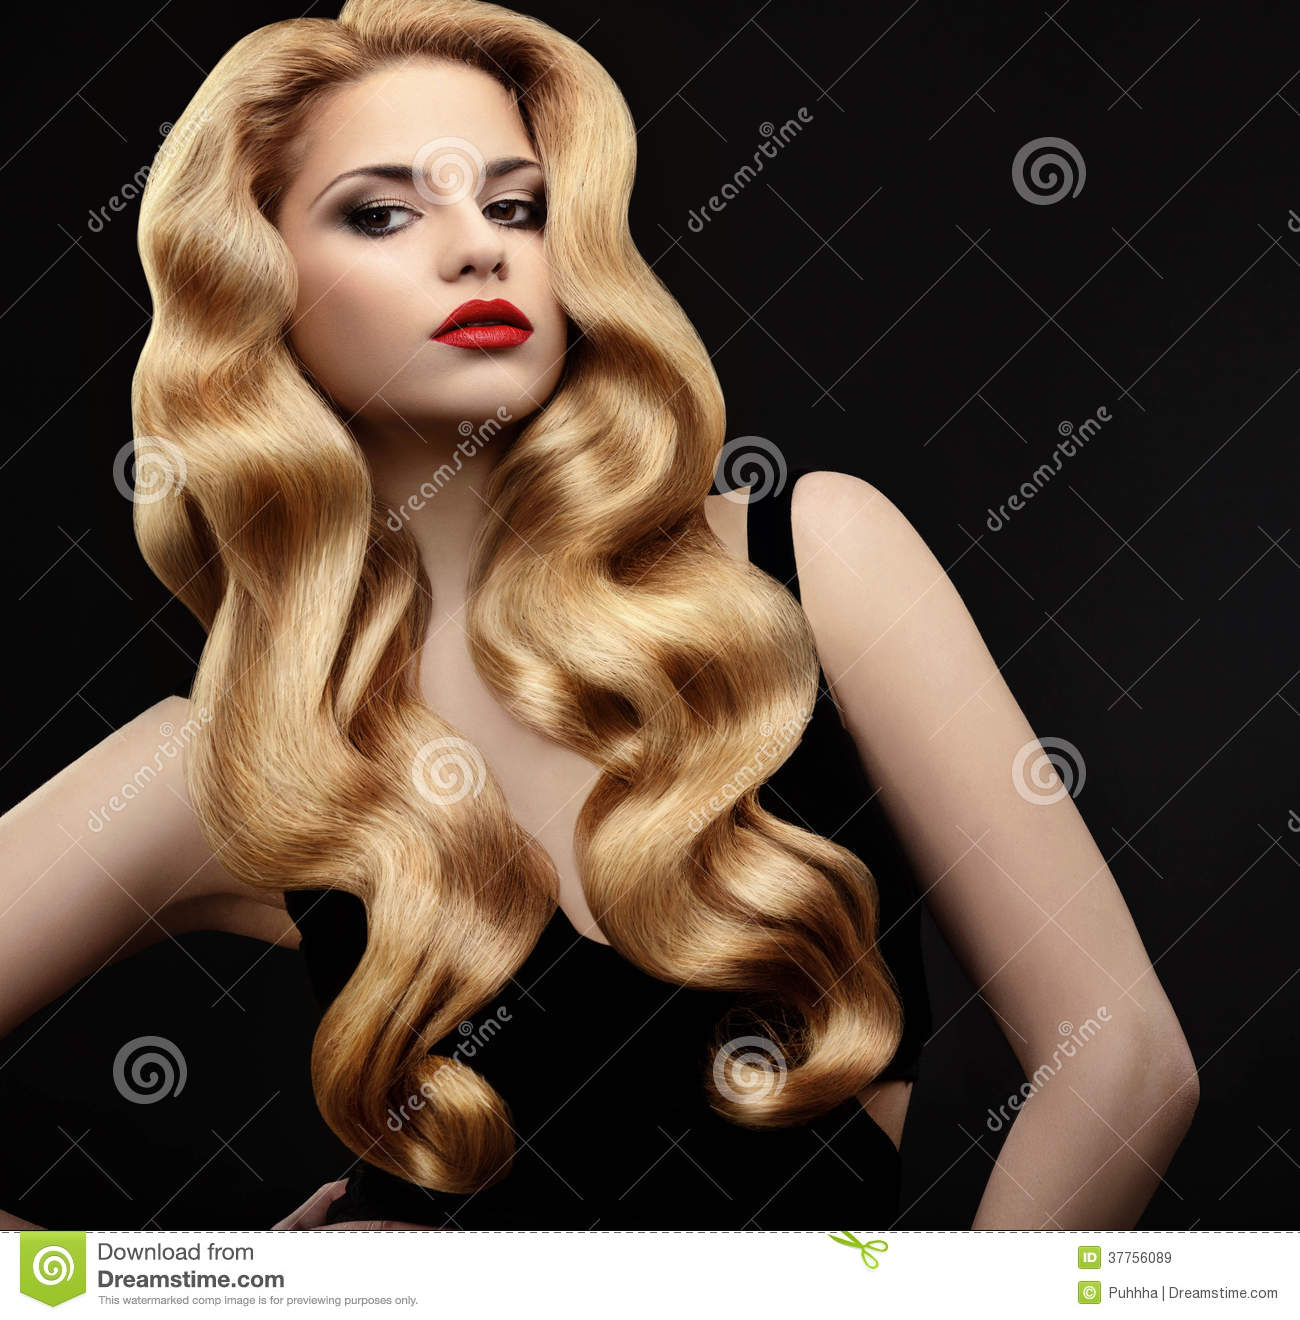 Portraits of young attractive girls with long blonde hair Vector ...